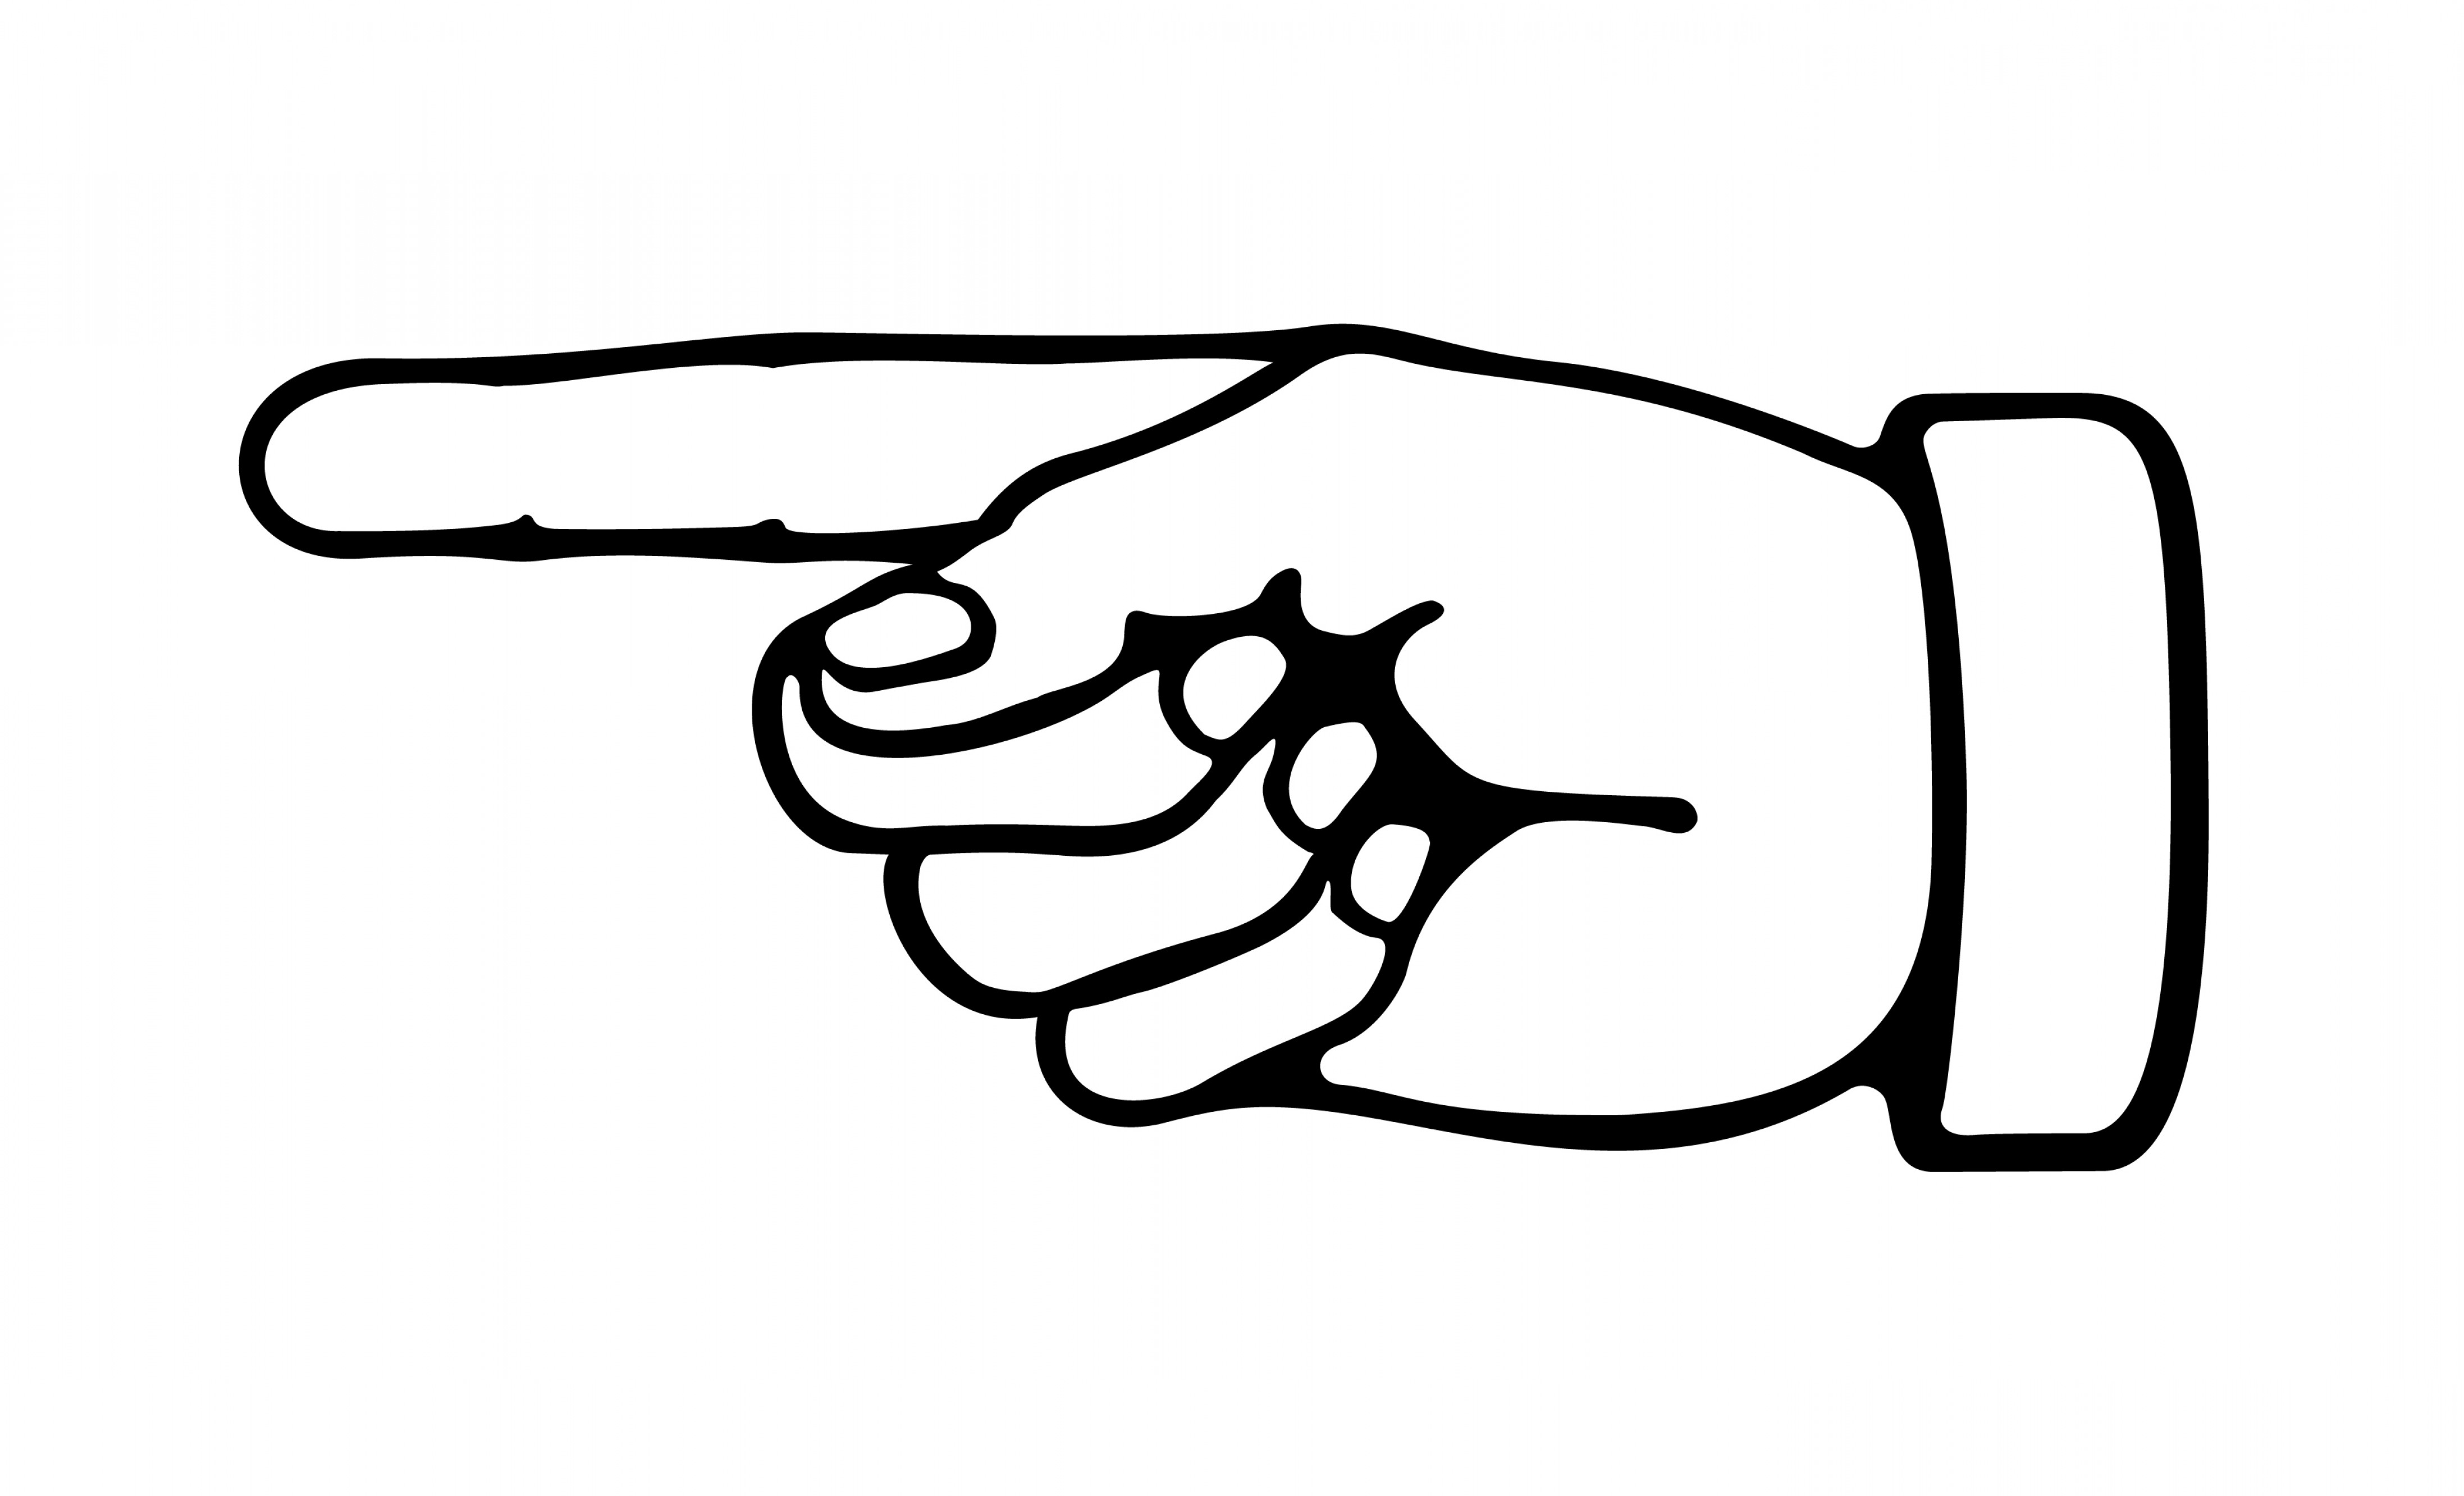 pointing hand clipart 8 - Hand Clipart